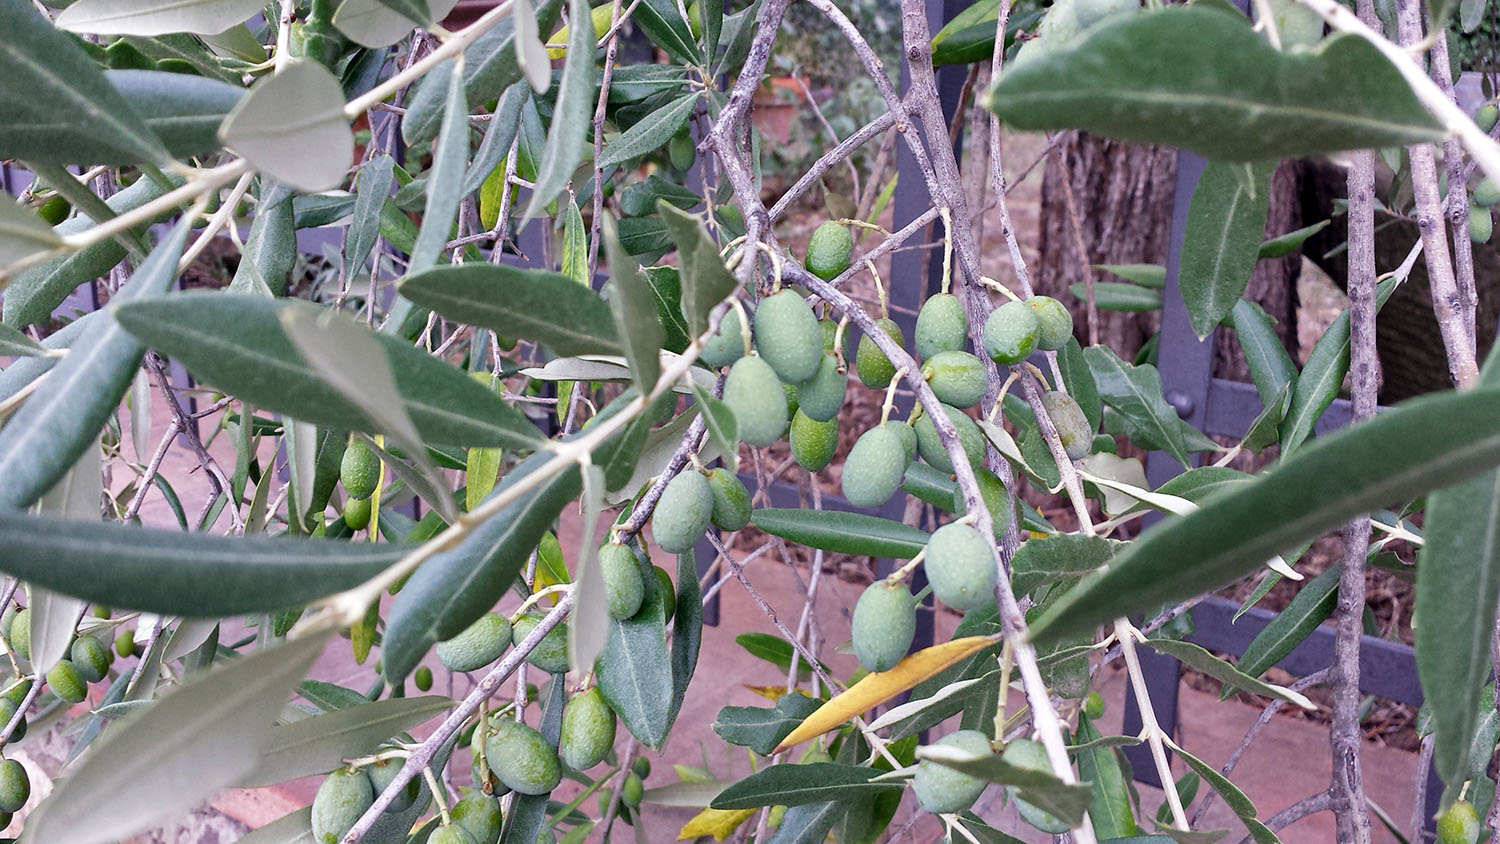 Local-olives-tuscany-italy